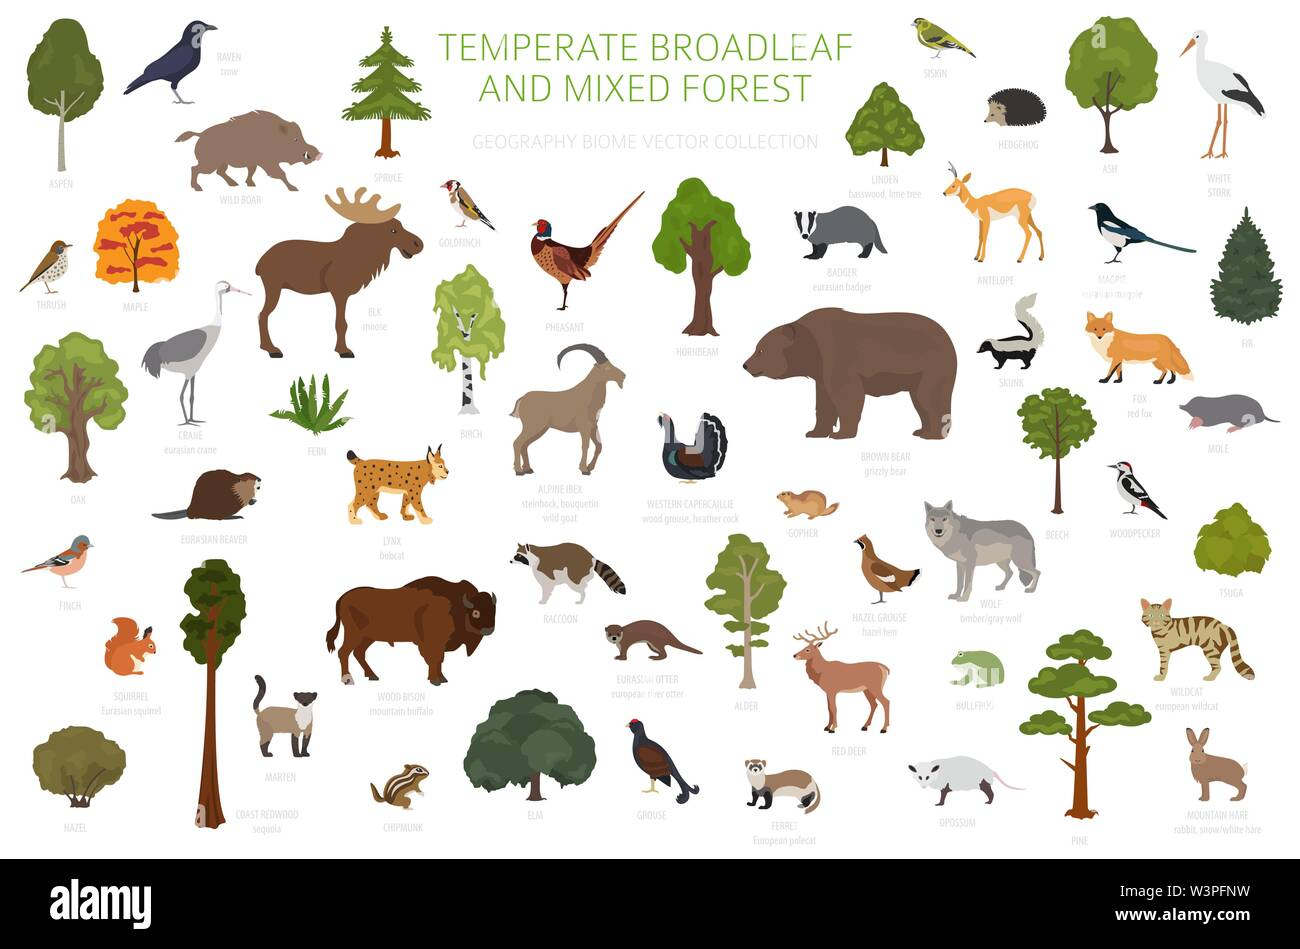 The northern forest as some species are no longer able to survive in the new climatic. Temperate Broadleaf Forest And Mixed Forest Biome Terrestrial Ecosystem World Map Animals Birds And Plants Graphic Design Vector Illustration Stock Vector Image Art Alamy